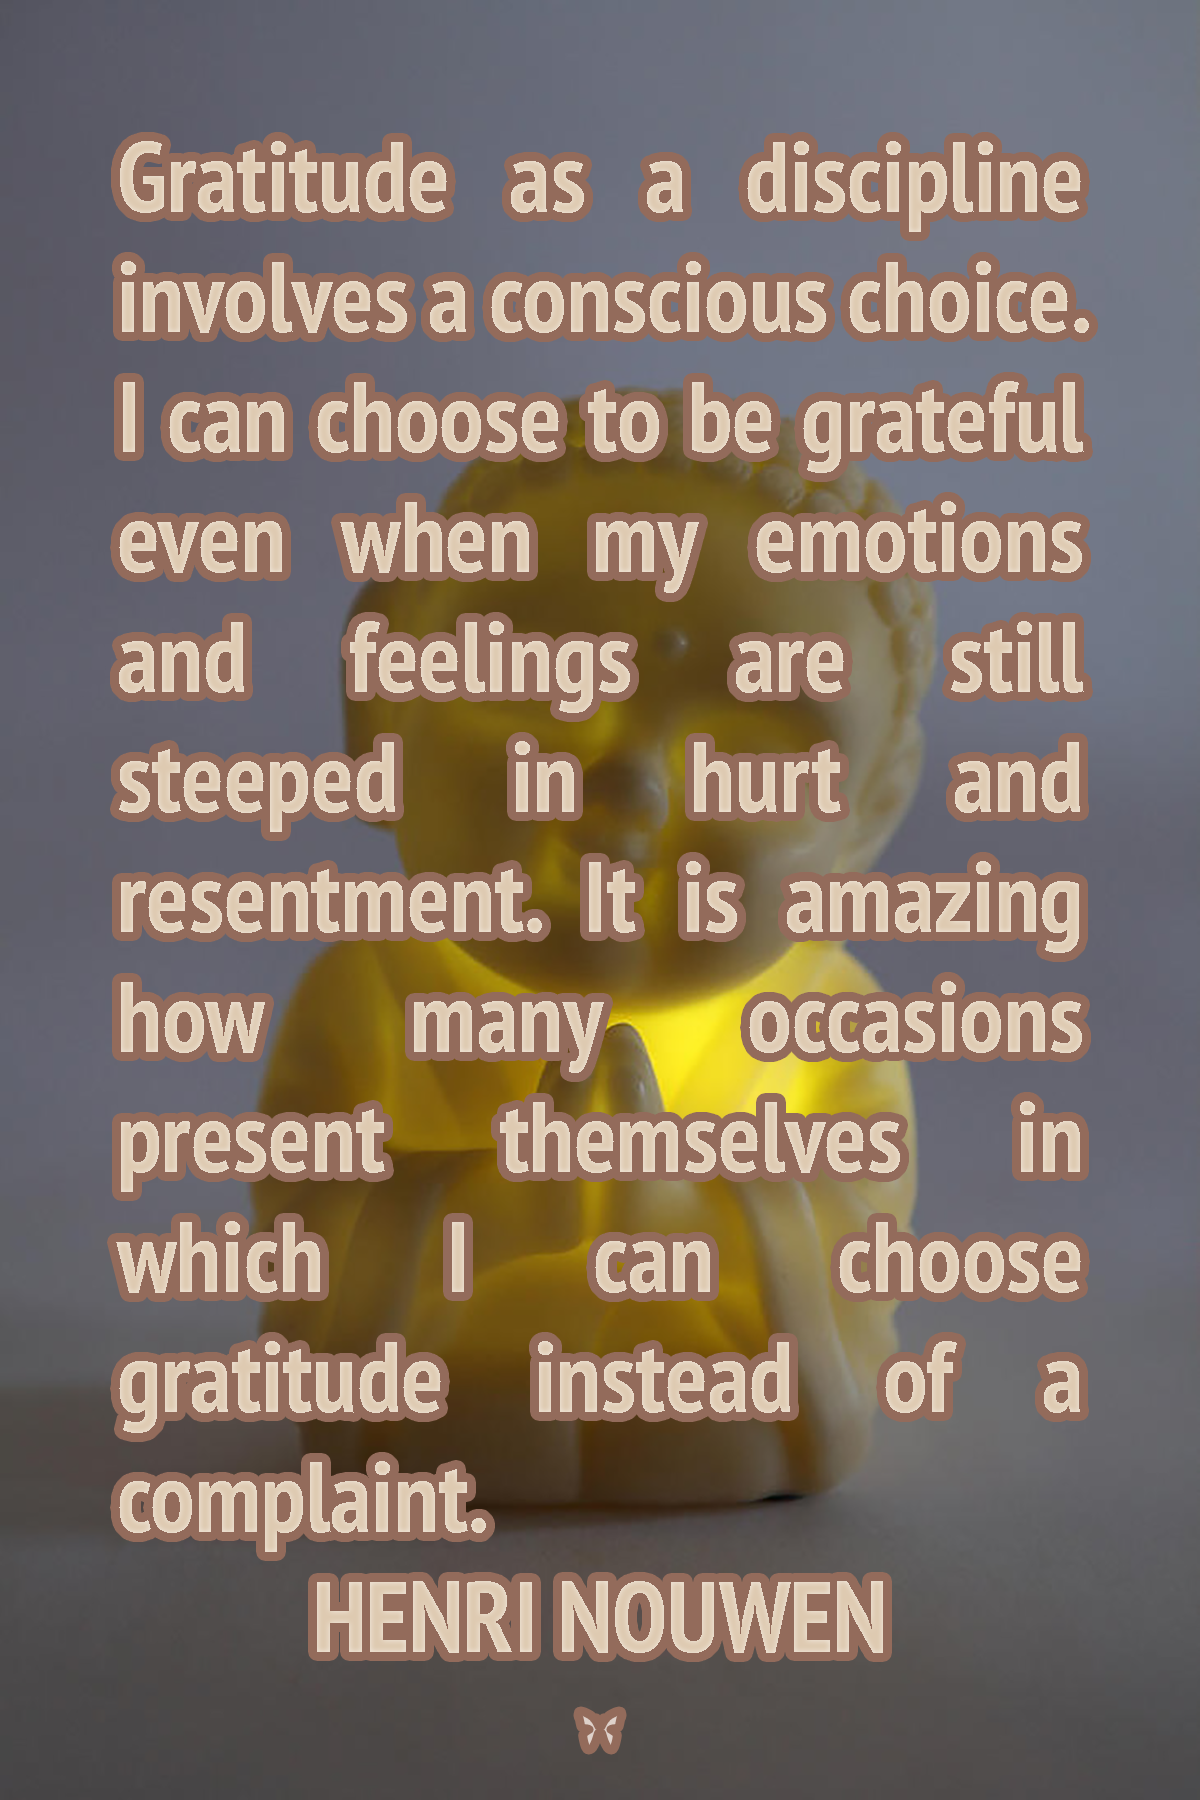 Gratitude as a discipline involves a conscious choice. I can choose to be grateful even when my emotions and feelings are still steeped in hurt and resentment. It is amazing how many occasions present themselves in which I can choose gratitude instead of a complaint.  HENRI NOUWEN